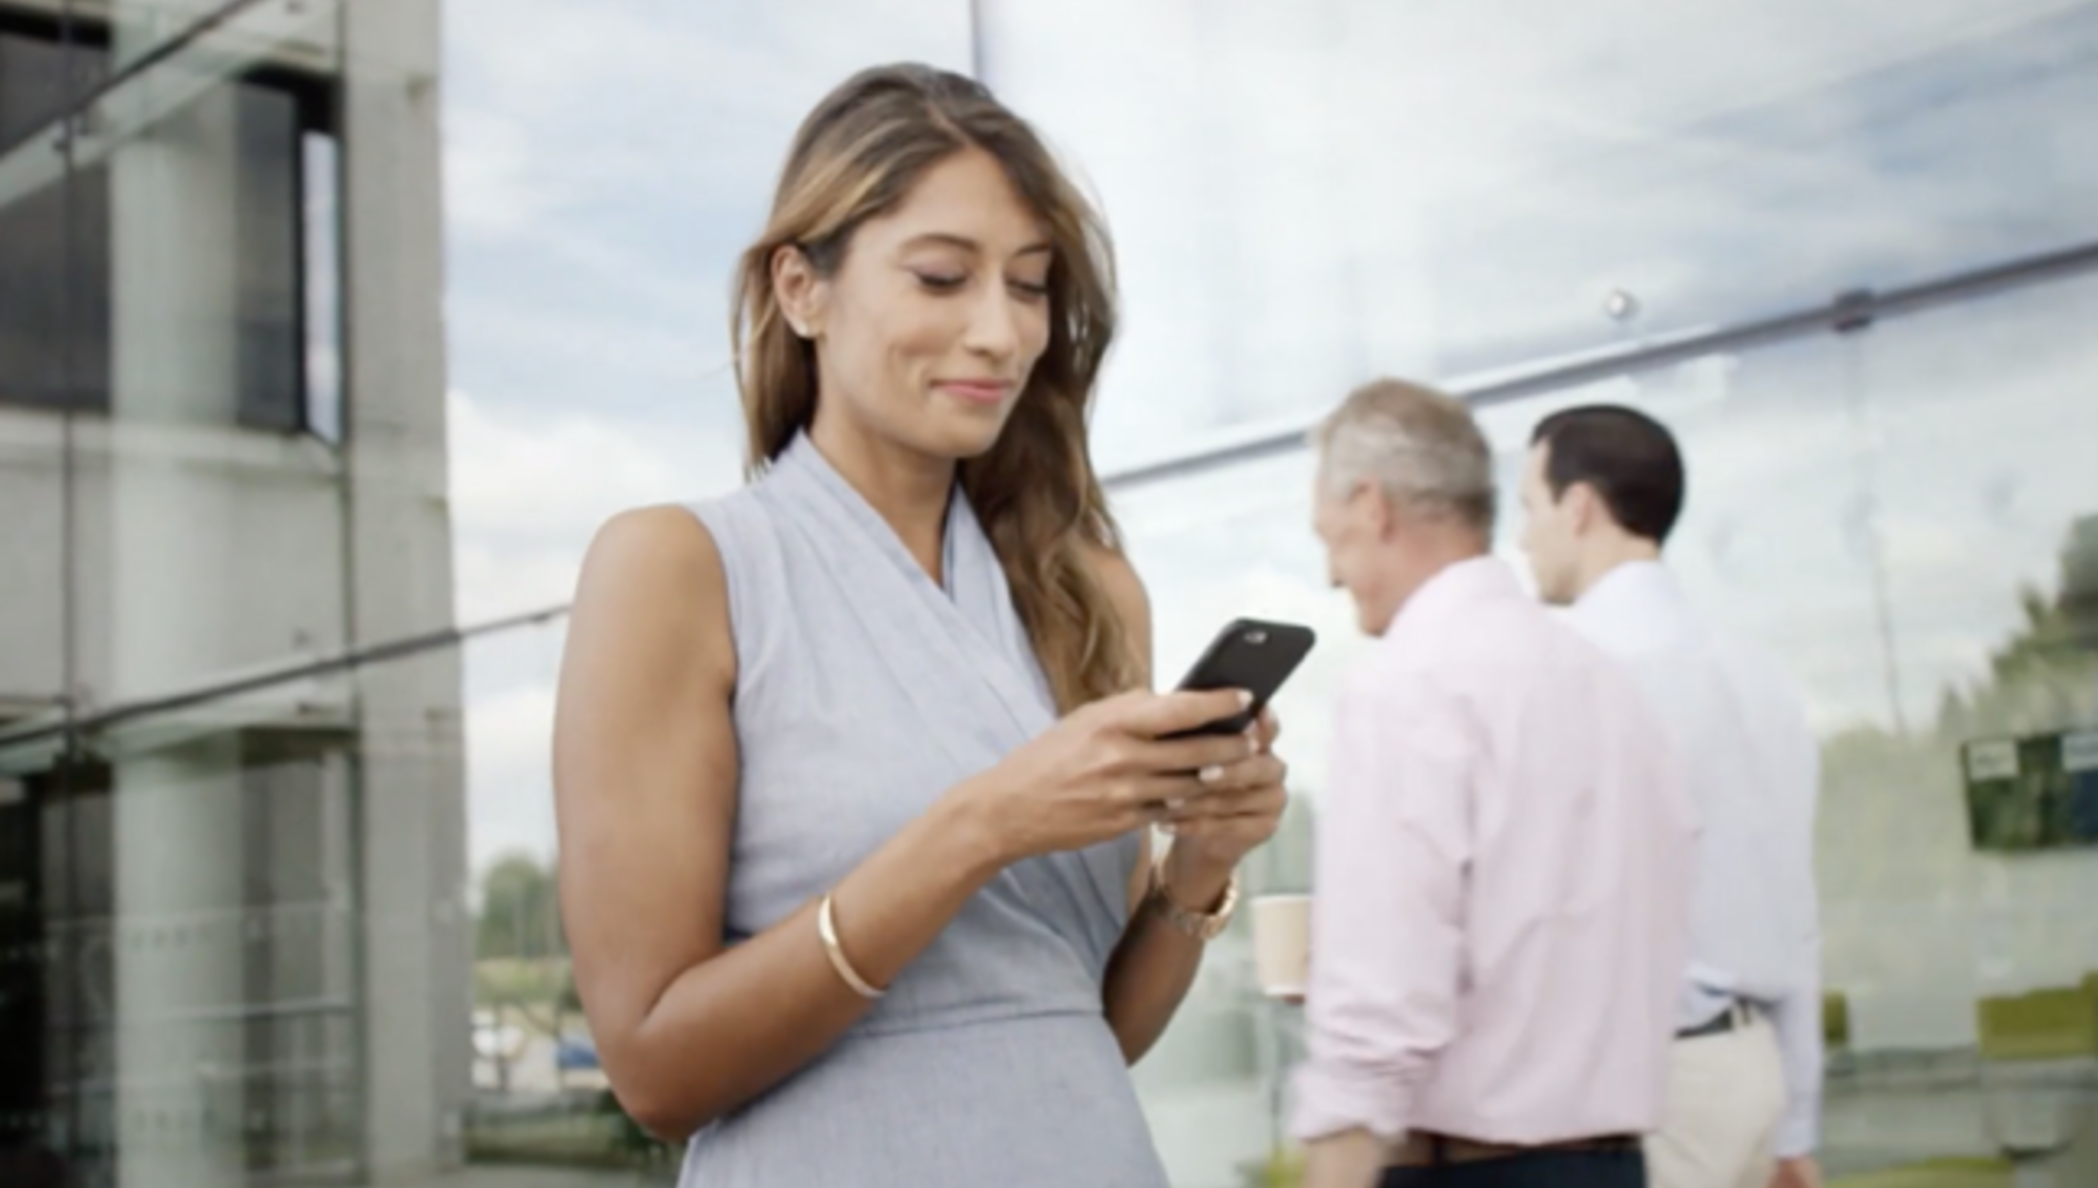 Woman smiling while looking at a device she is holding.